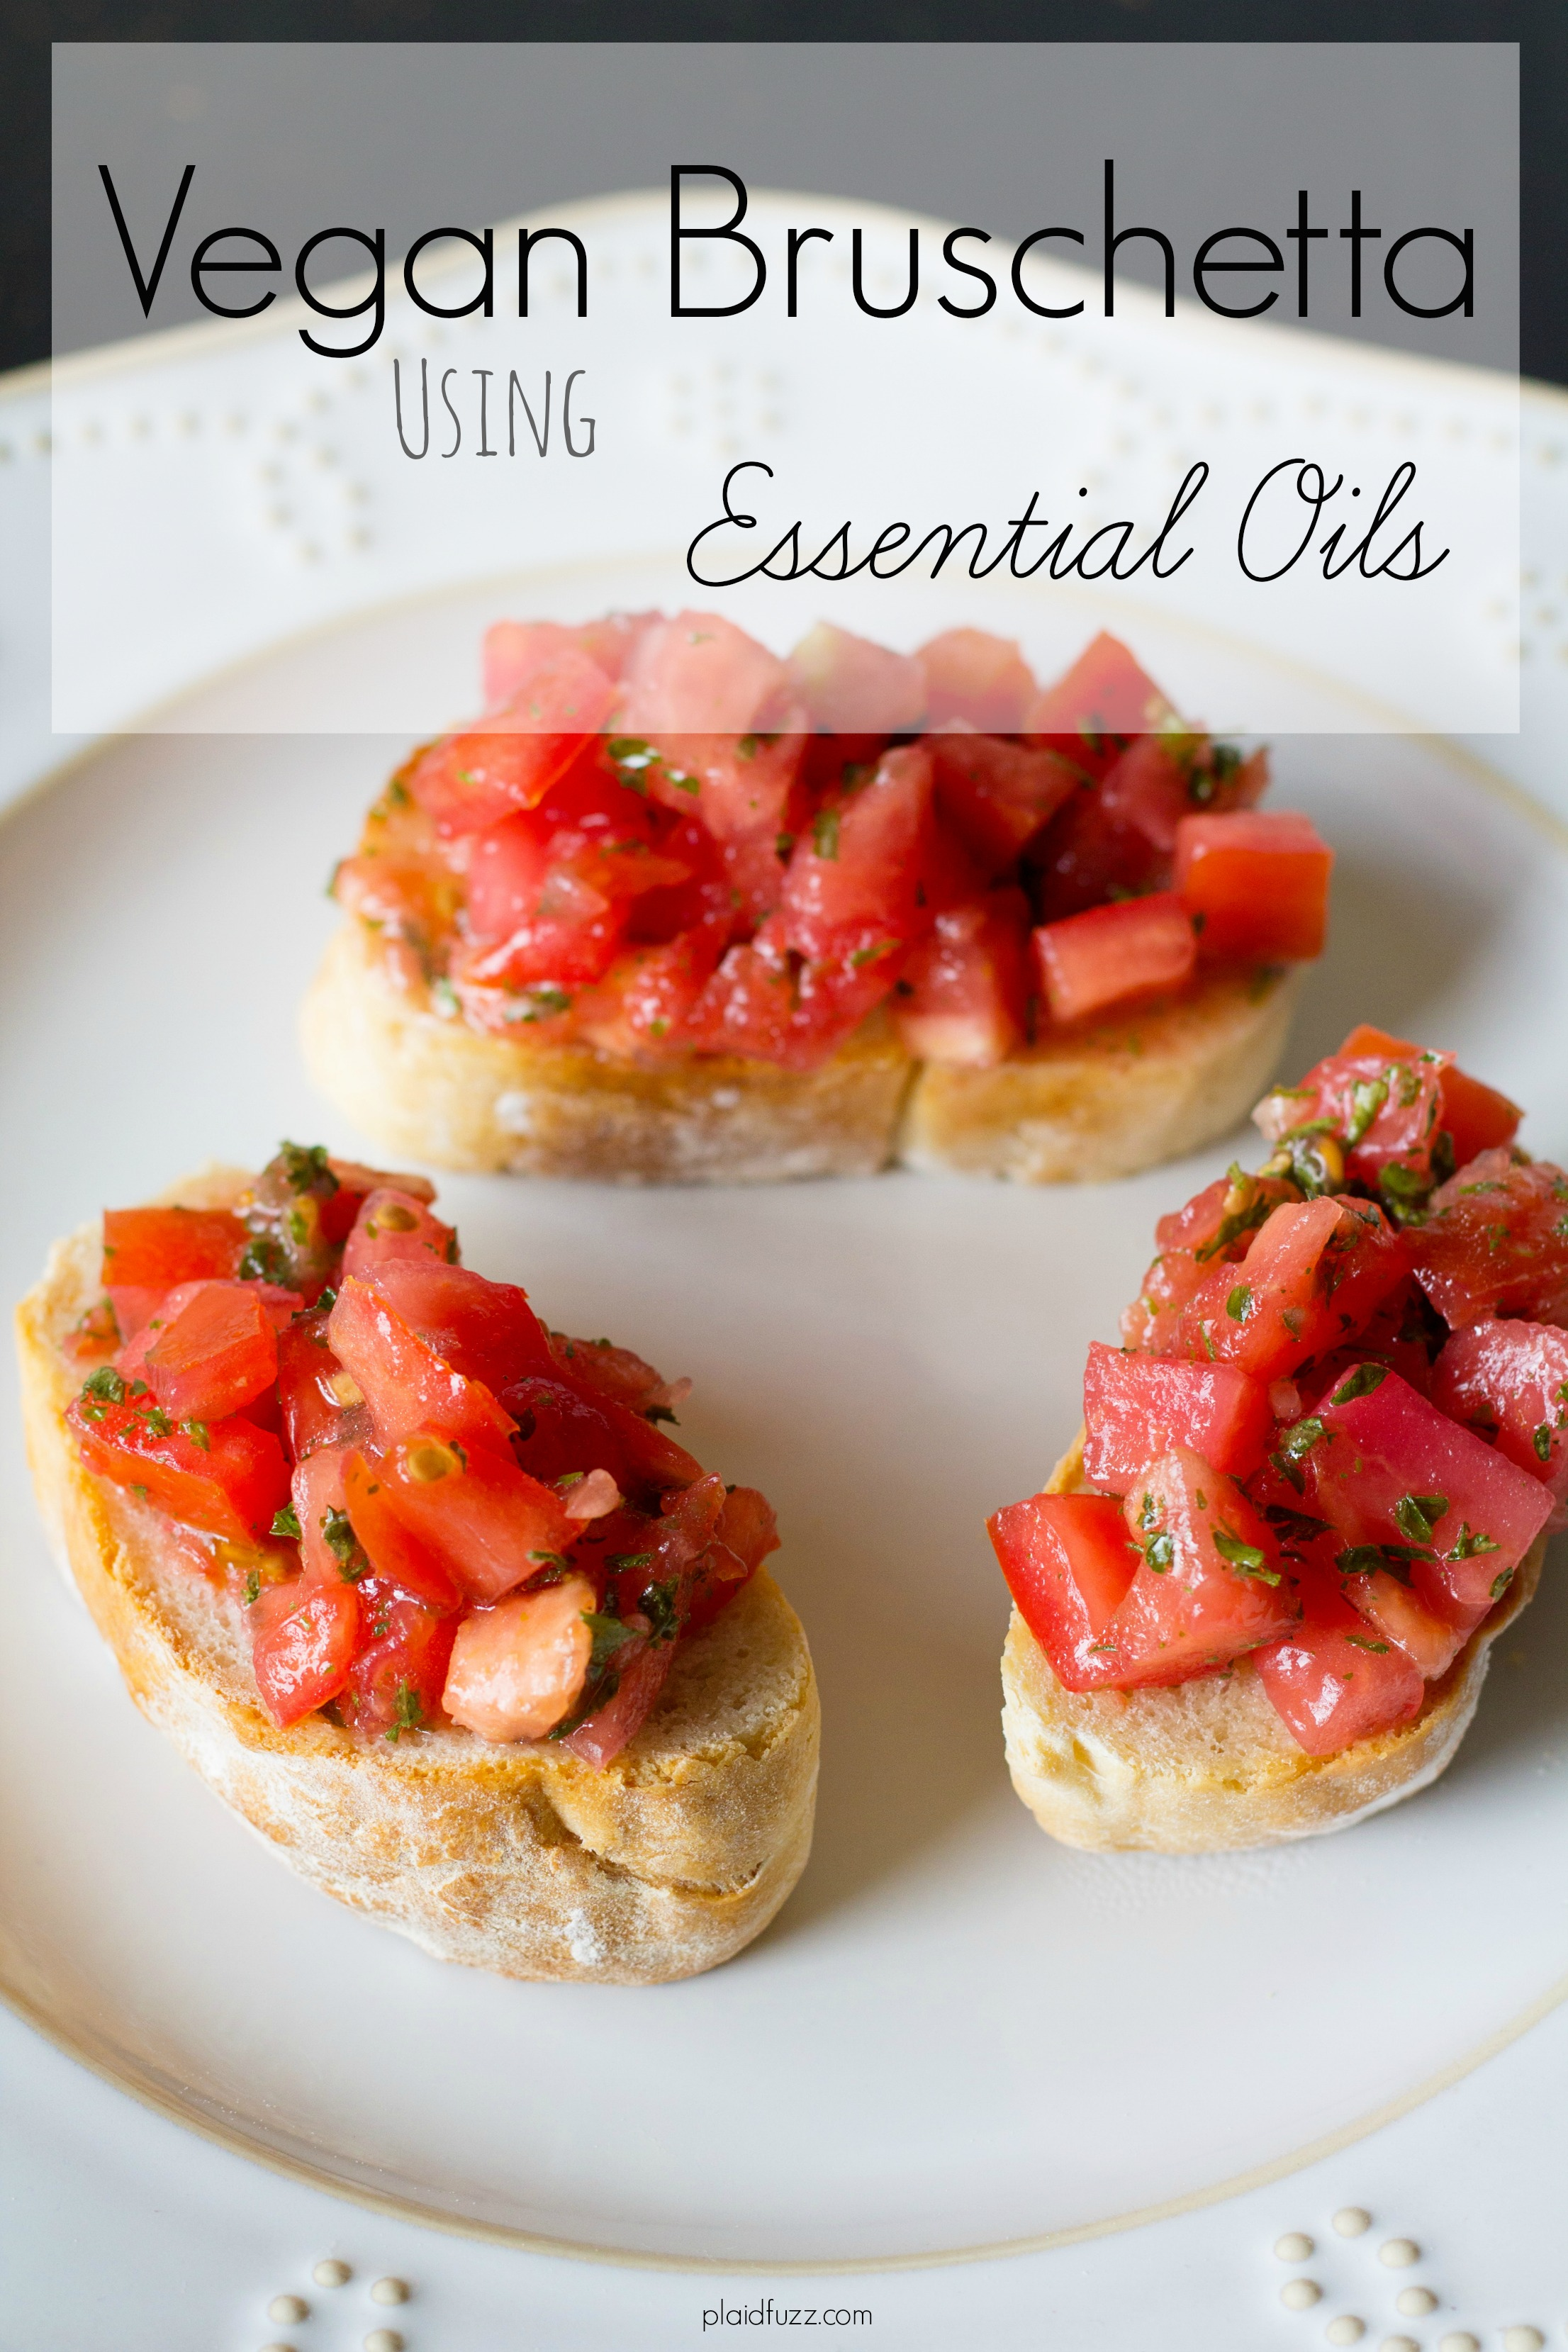 Vegan Bruschetta Recipe Using Essential Oils